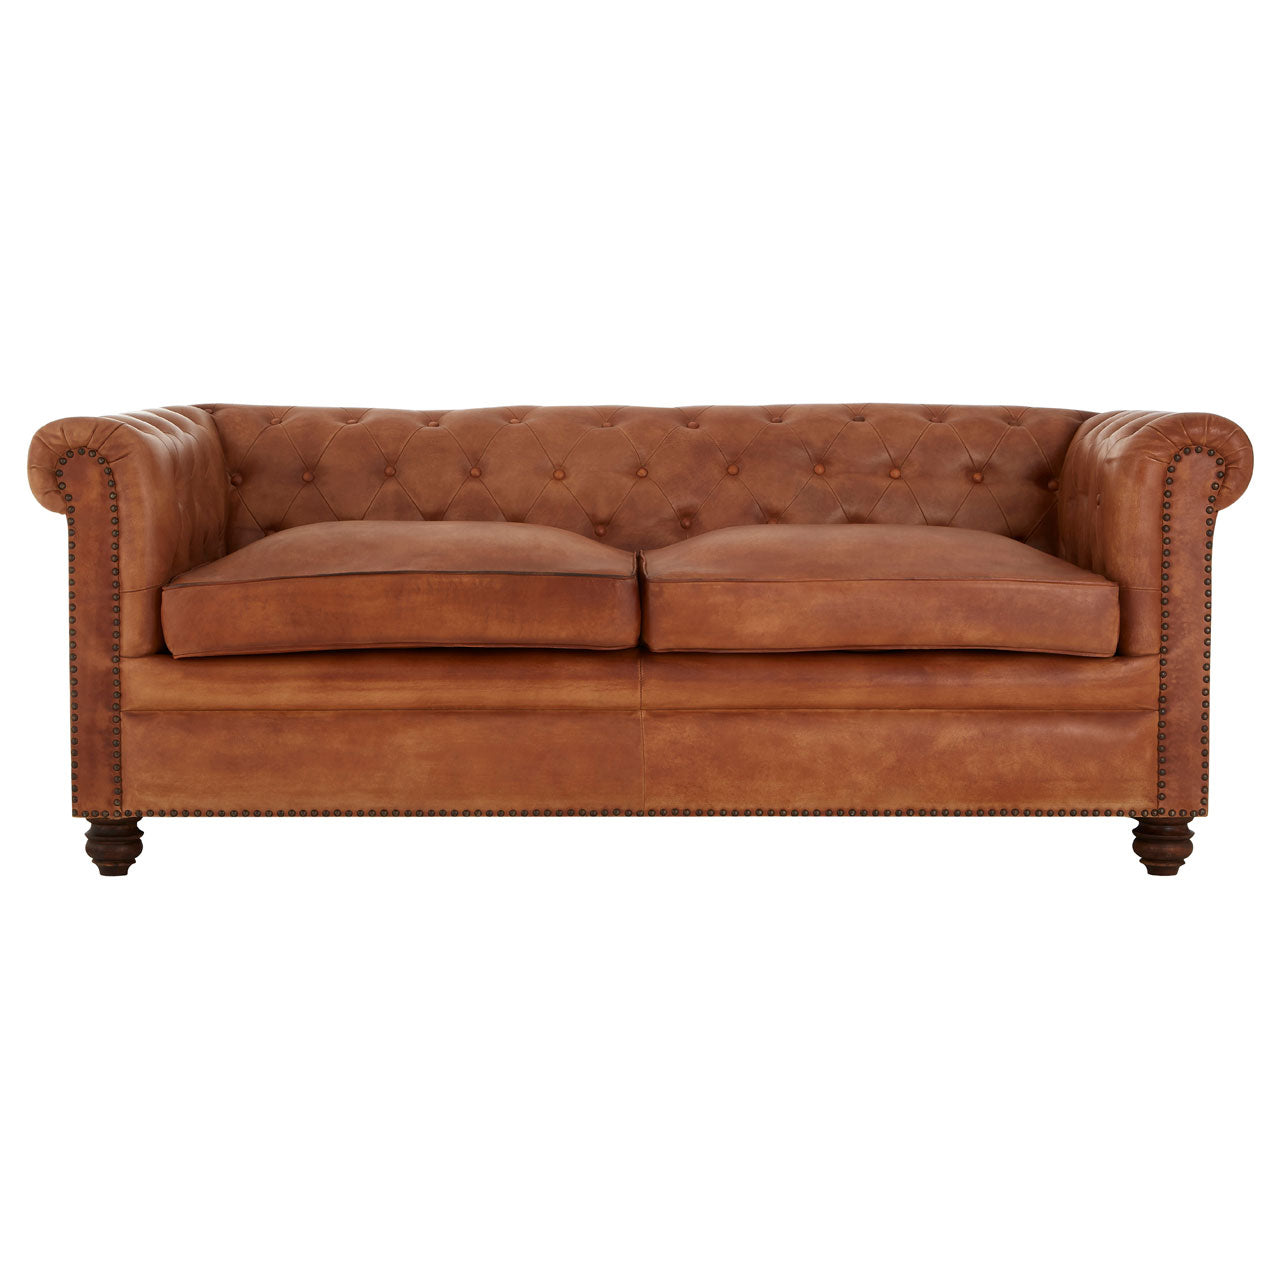 Buffalo Chesterfield Sofa Brown 3 Seat - Ezzo